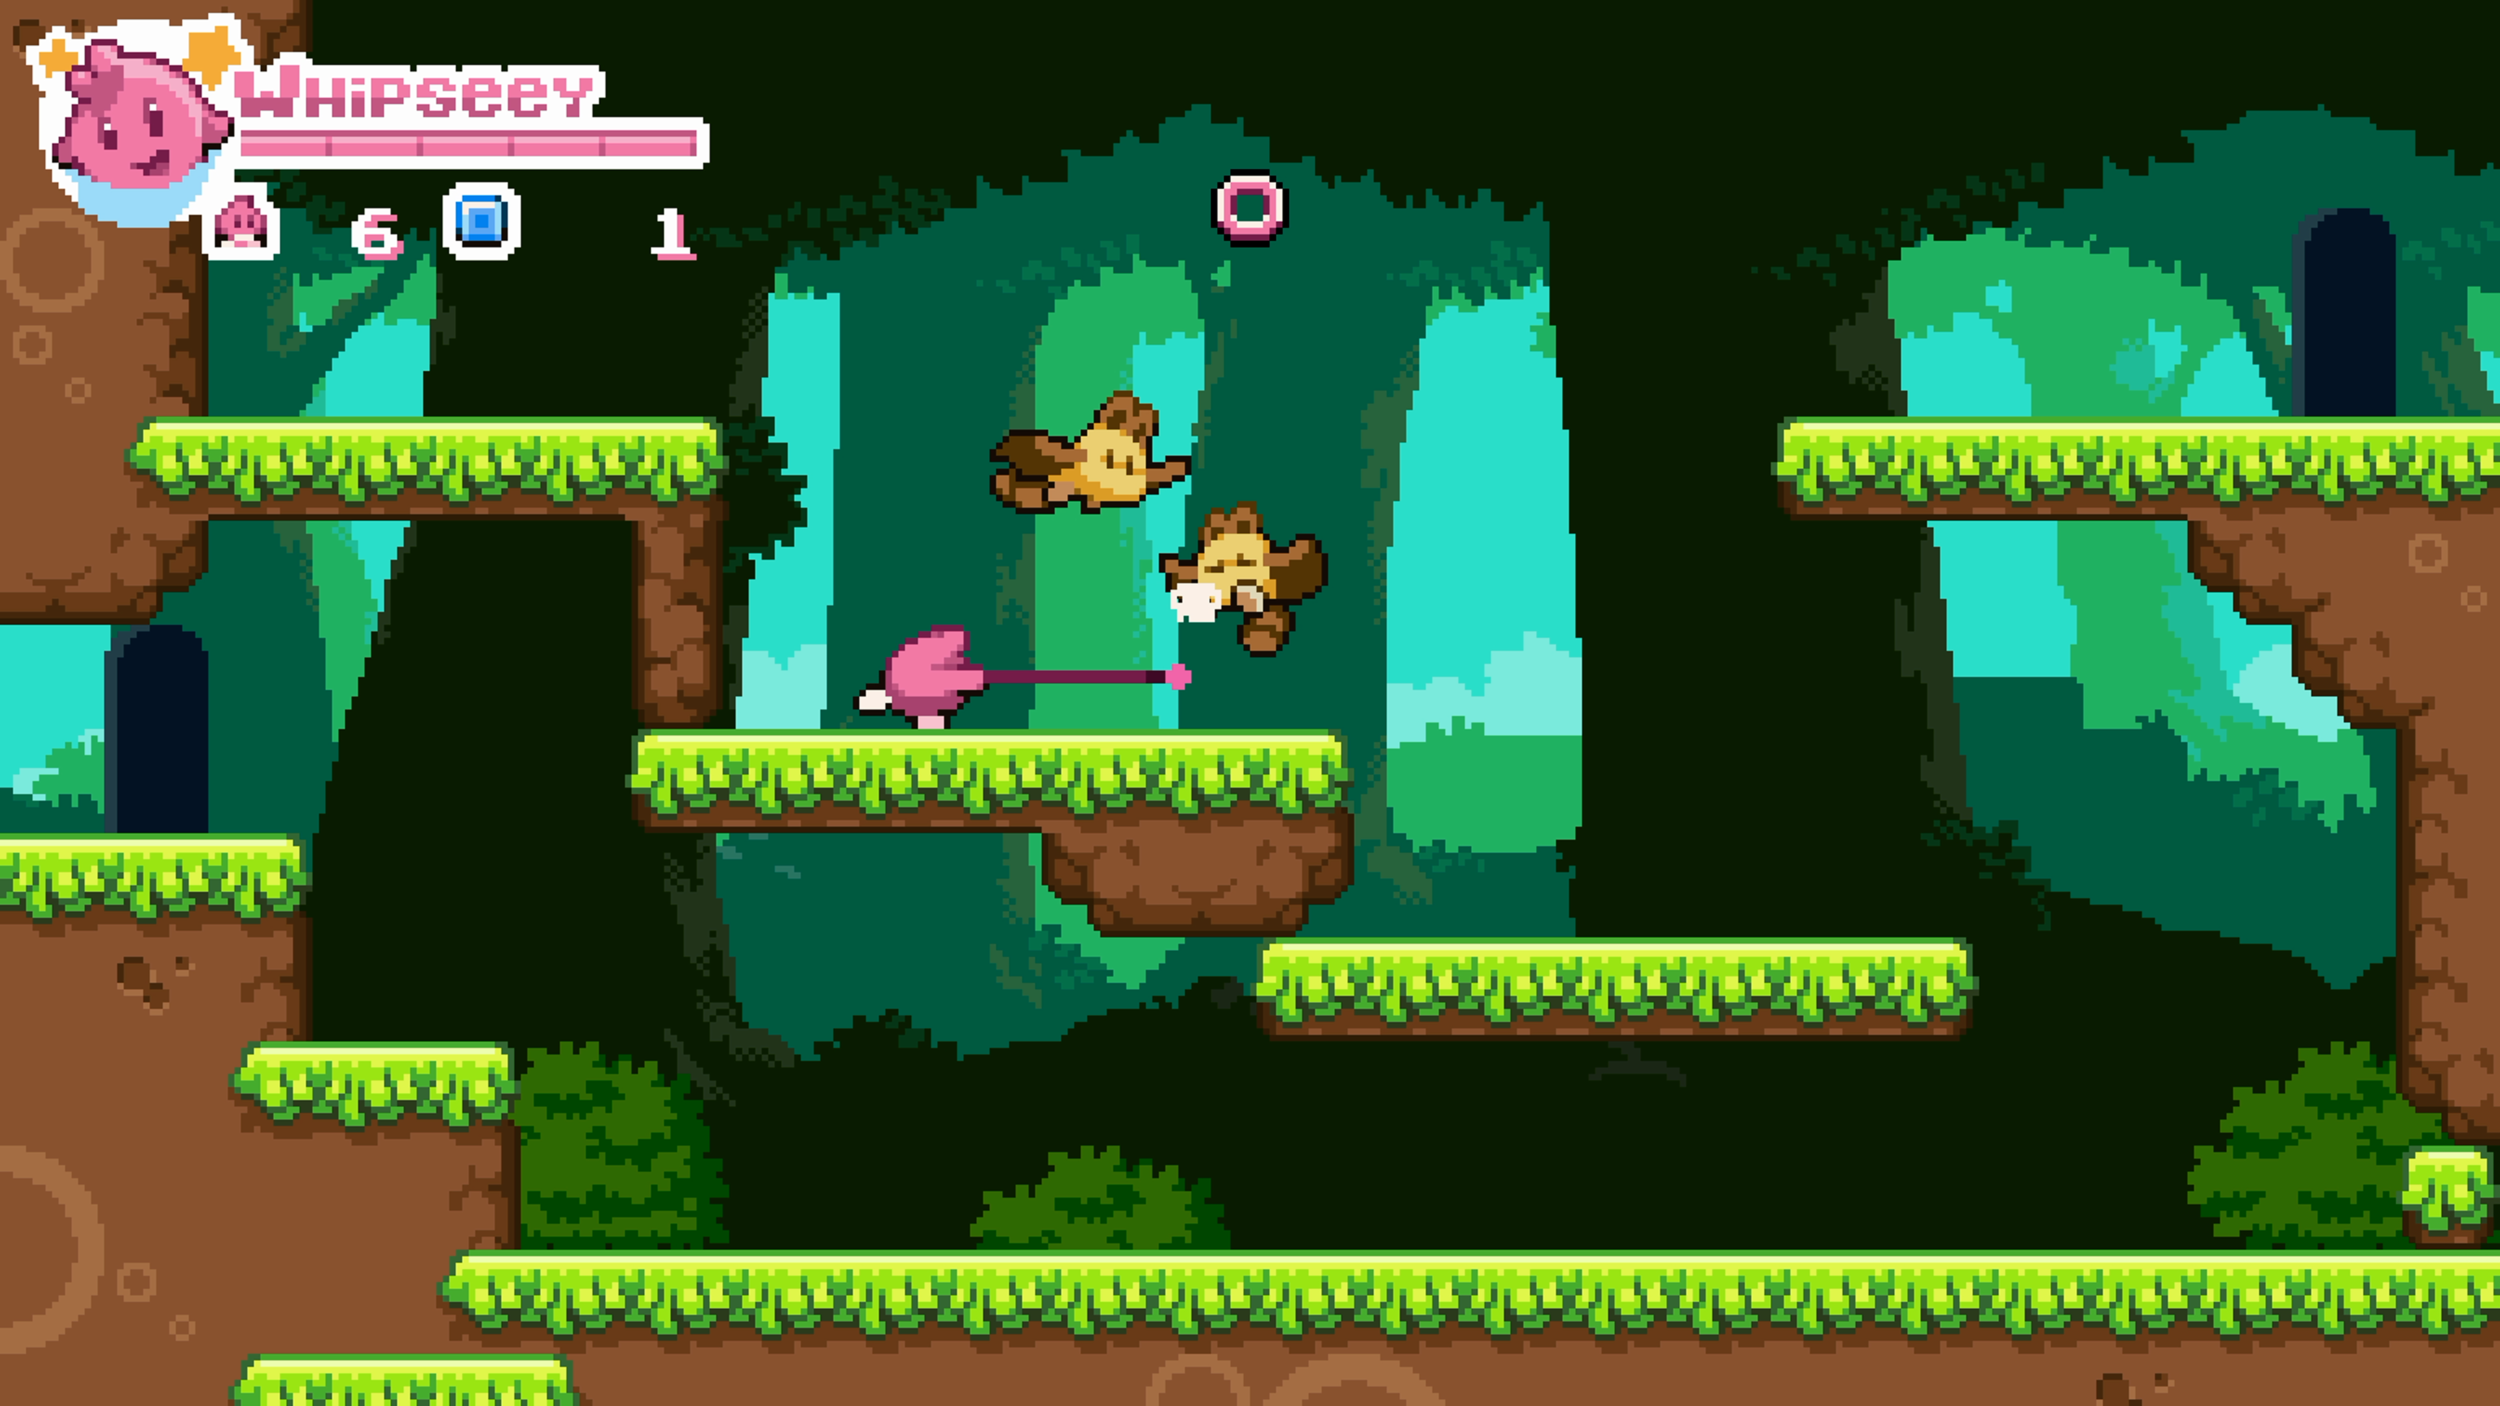 Like other classic platformers, Whipseey will get more challenging as you go, with more enemies and longer levels.